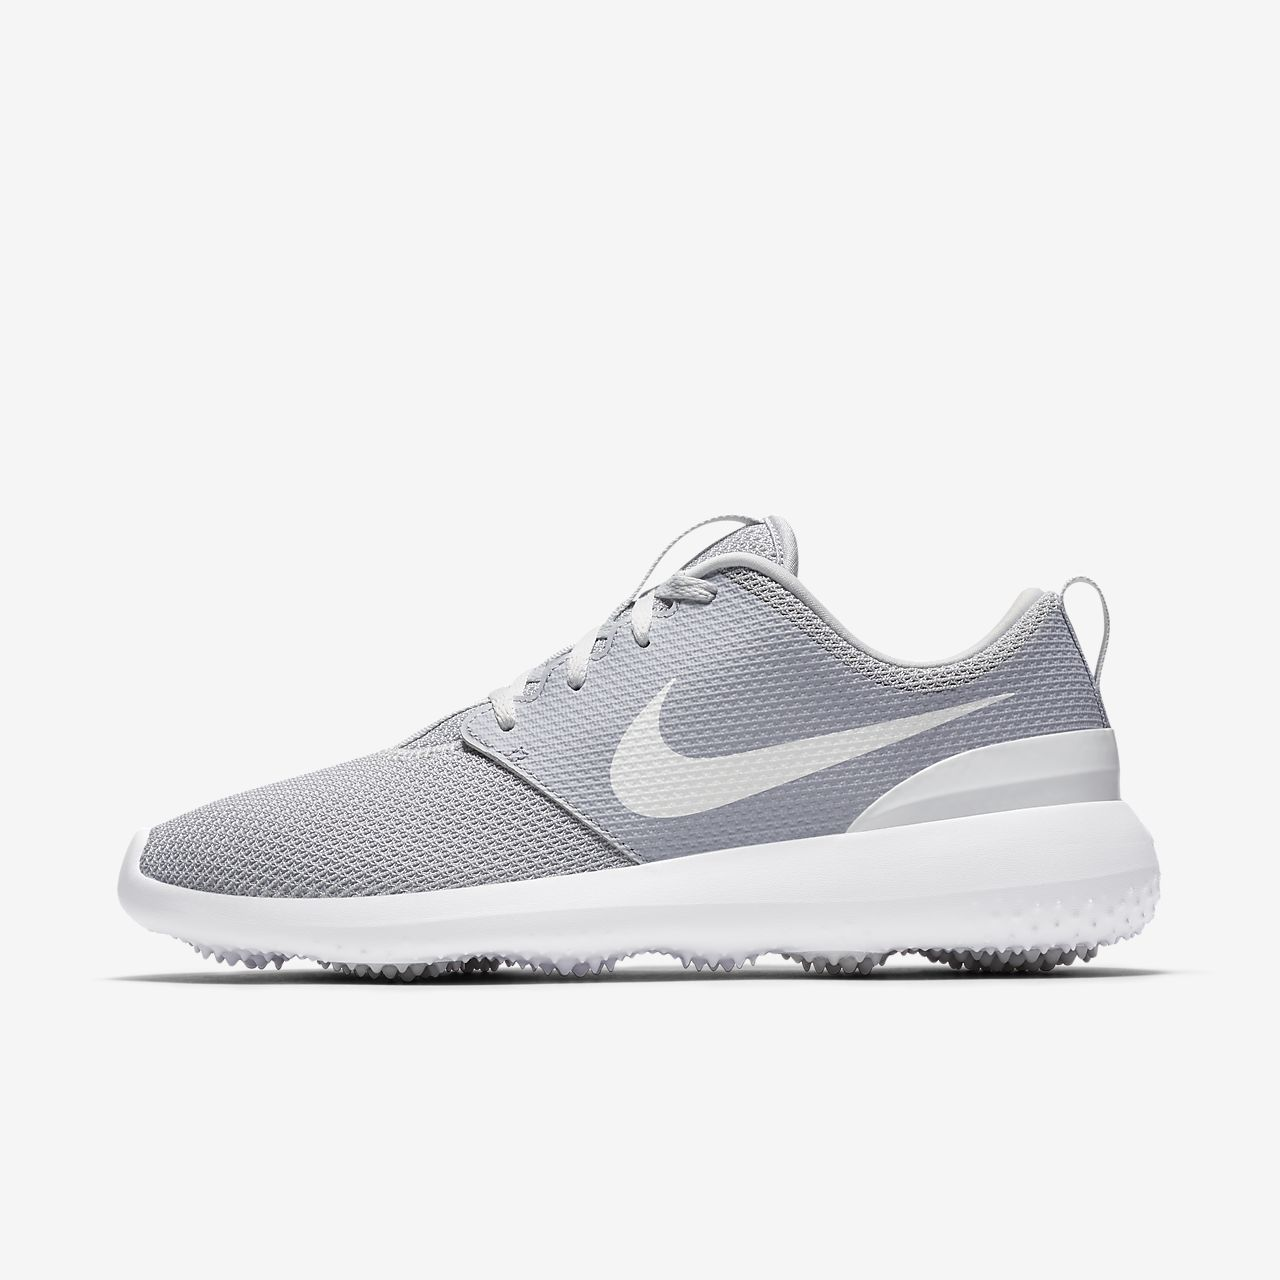 Nike Roshe G Men's Golf Shoe